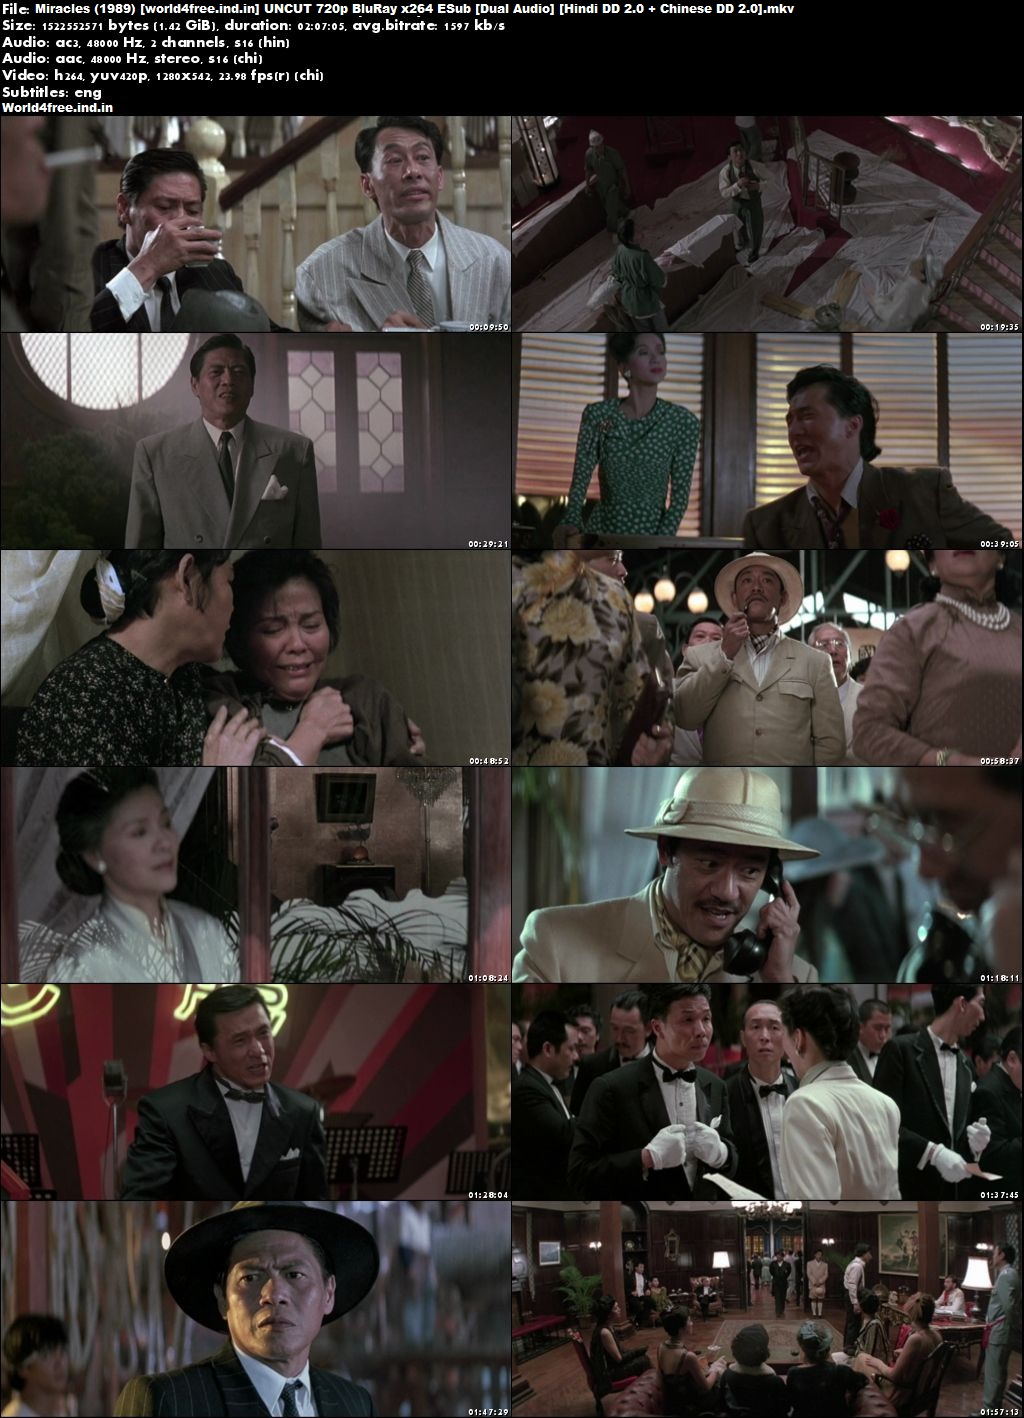 Miracles 1989 world4free.ind.in BRRip 720p Dual Audio Hindi Chinese Download